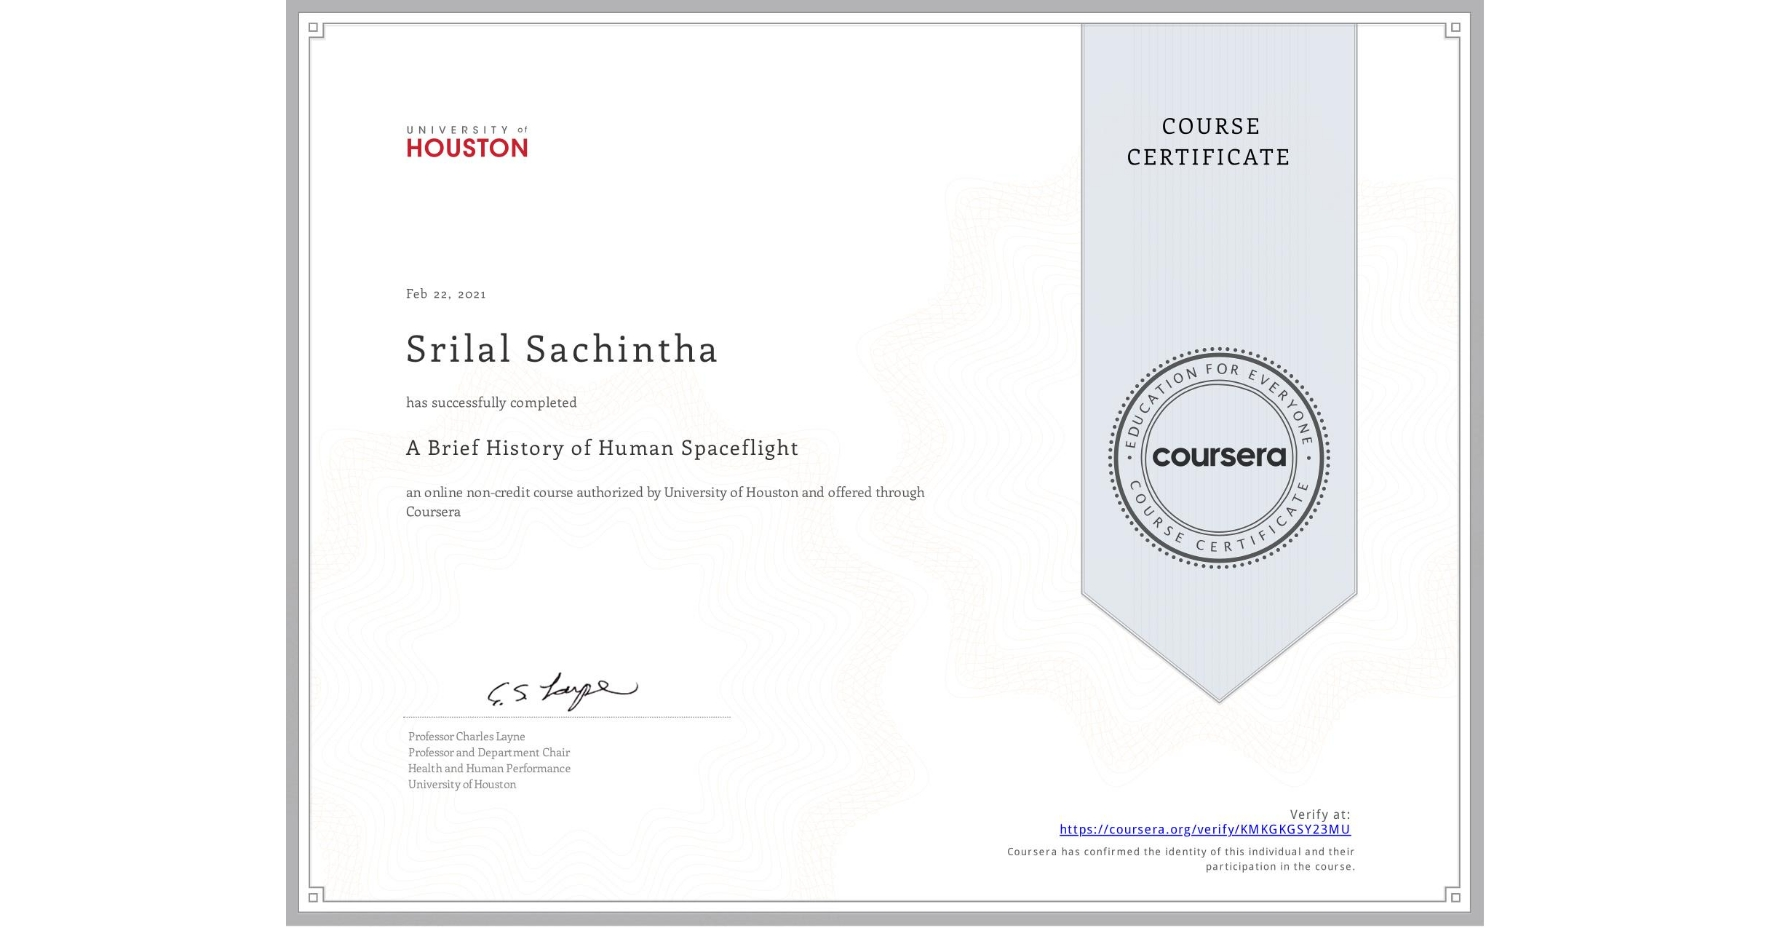 View certificate for Srilal Sachintha, A Brief History of Human Spaceflight, an online non-credit course authorized by University of Houston and offered through Coursera